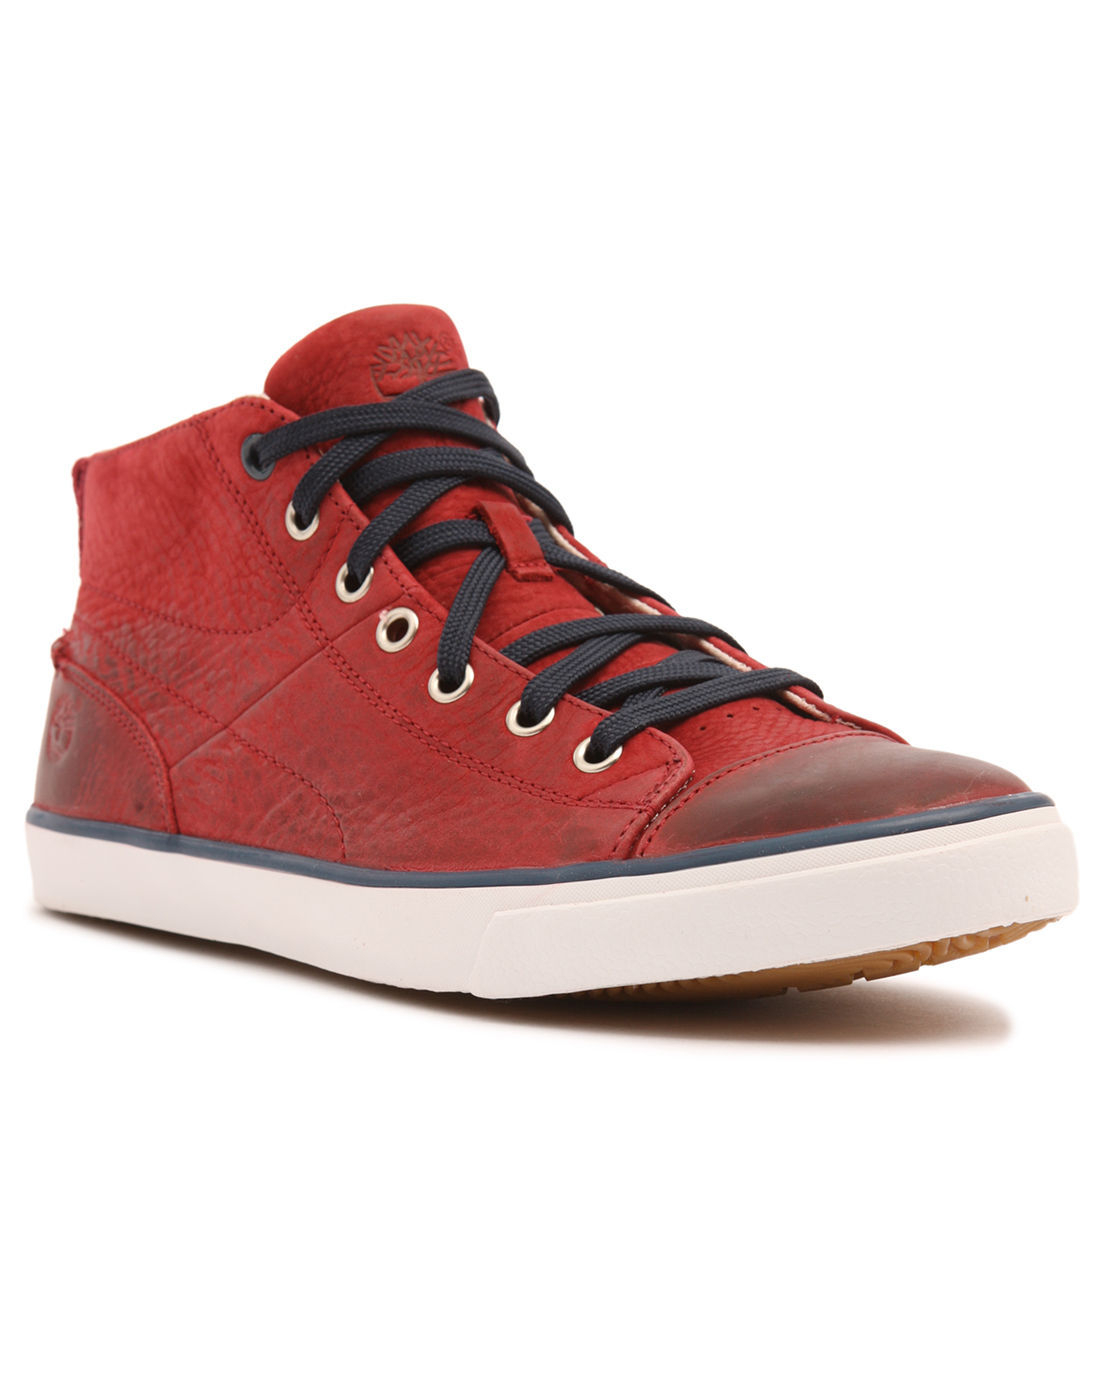 Timberland Mid Hookset Leather Bordeaux Sneakers in Red for Men   Lyst